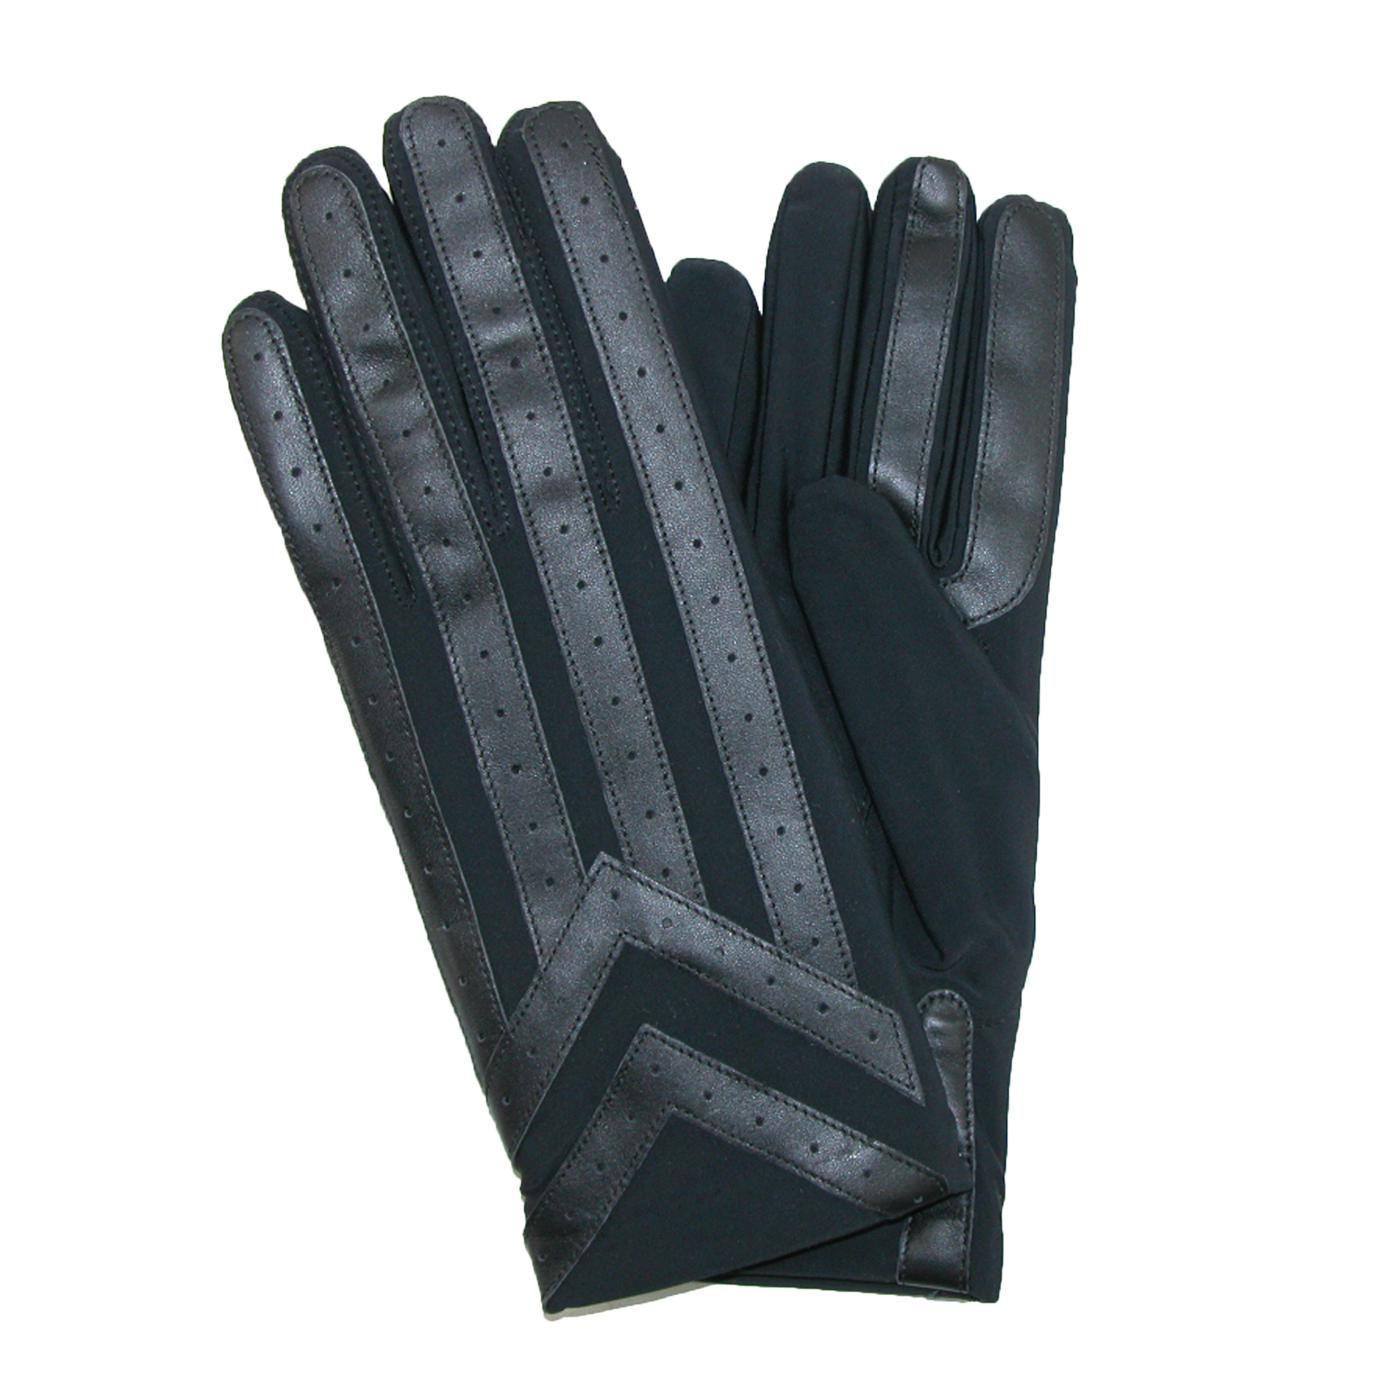 Mens gloves isotoner - Totes Isotoner Mens Thinsulate Lined Spandex Driving Glove Genuine Leather Palm Grips And Finger Protection